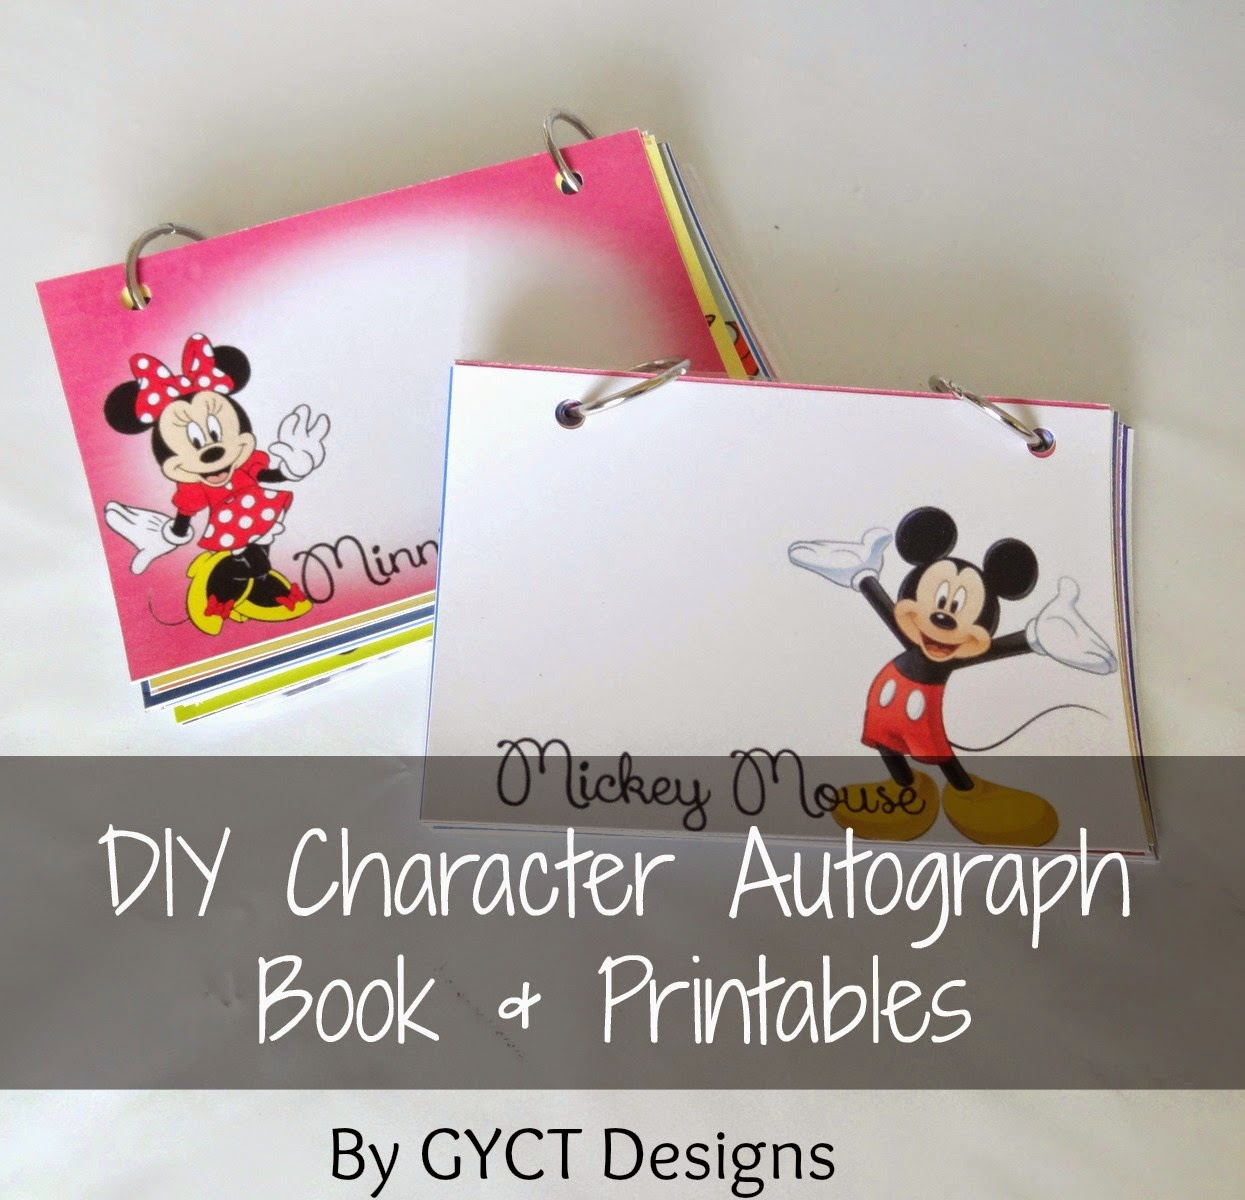 DIY Disney Autograph Book and Printables - GYCT Designs